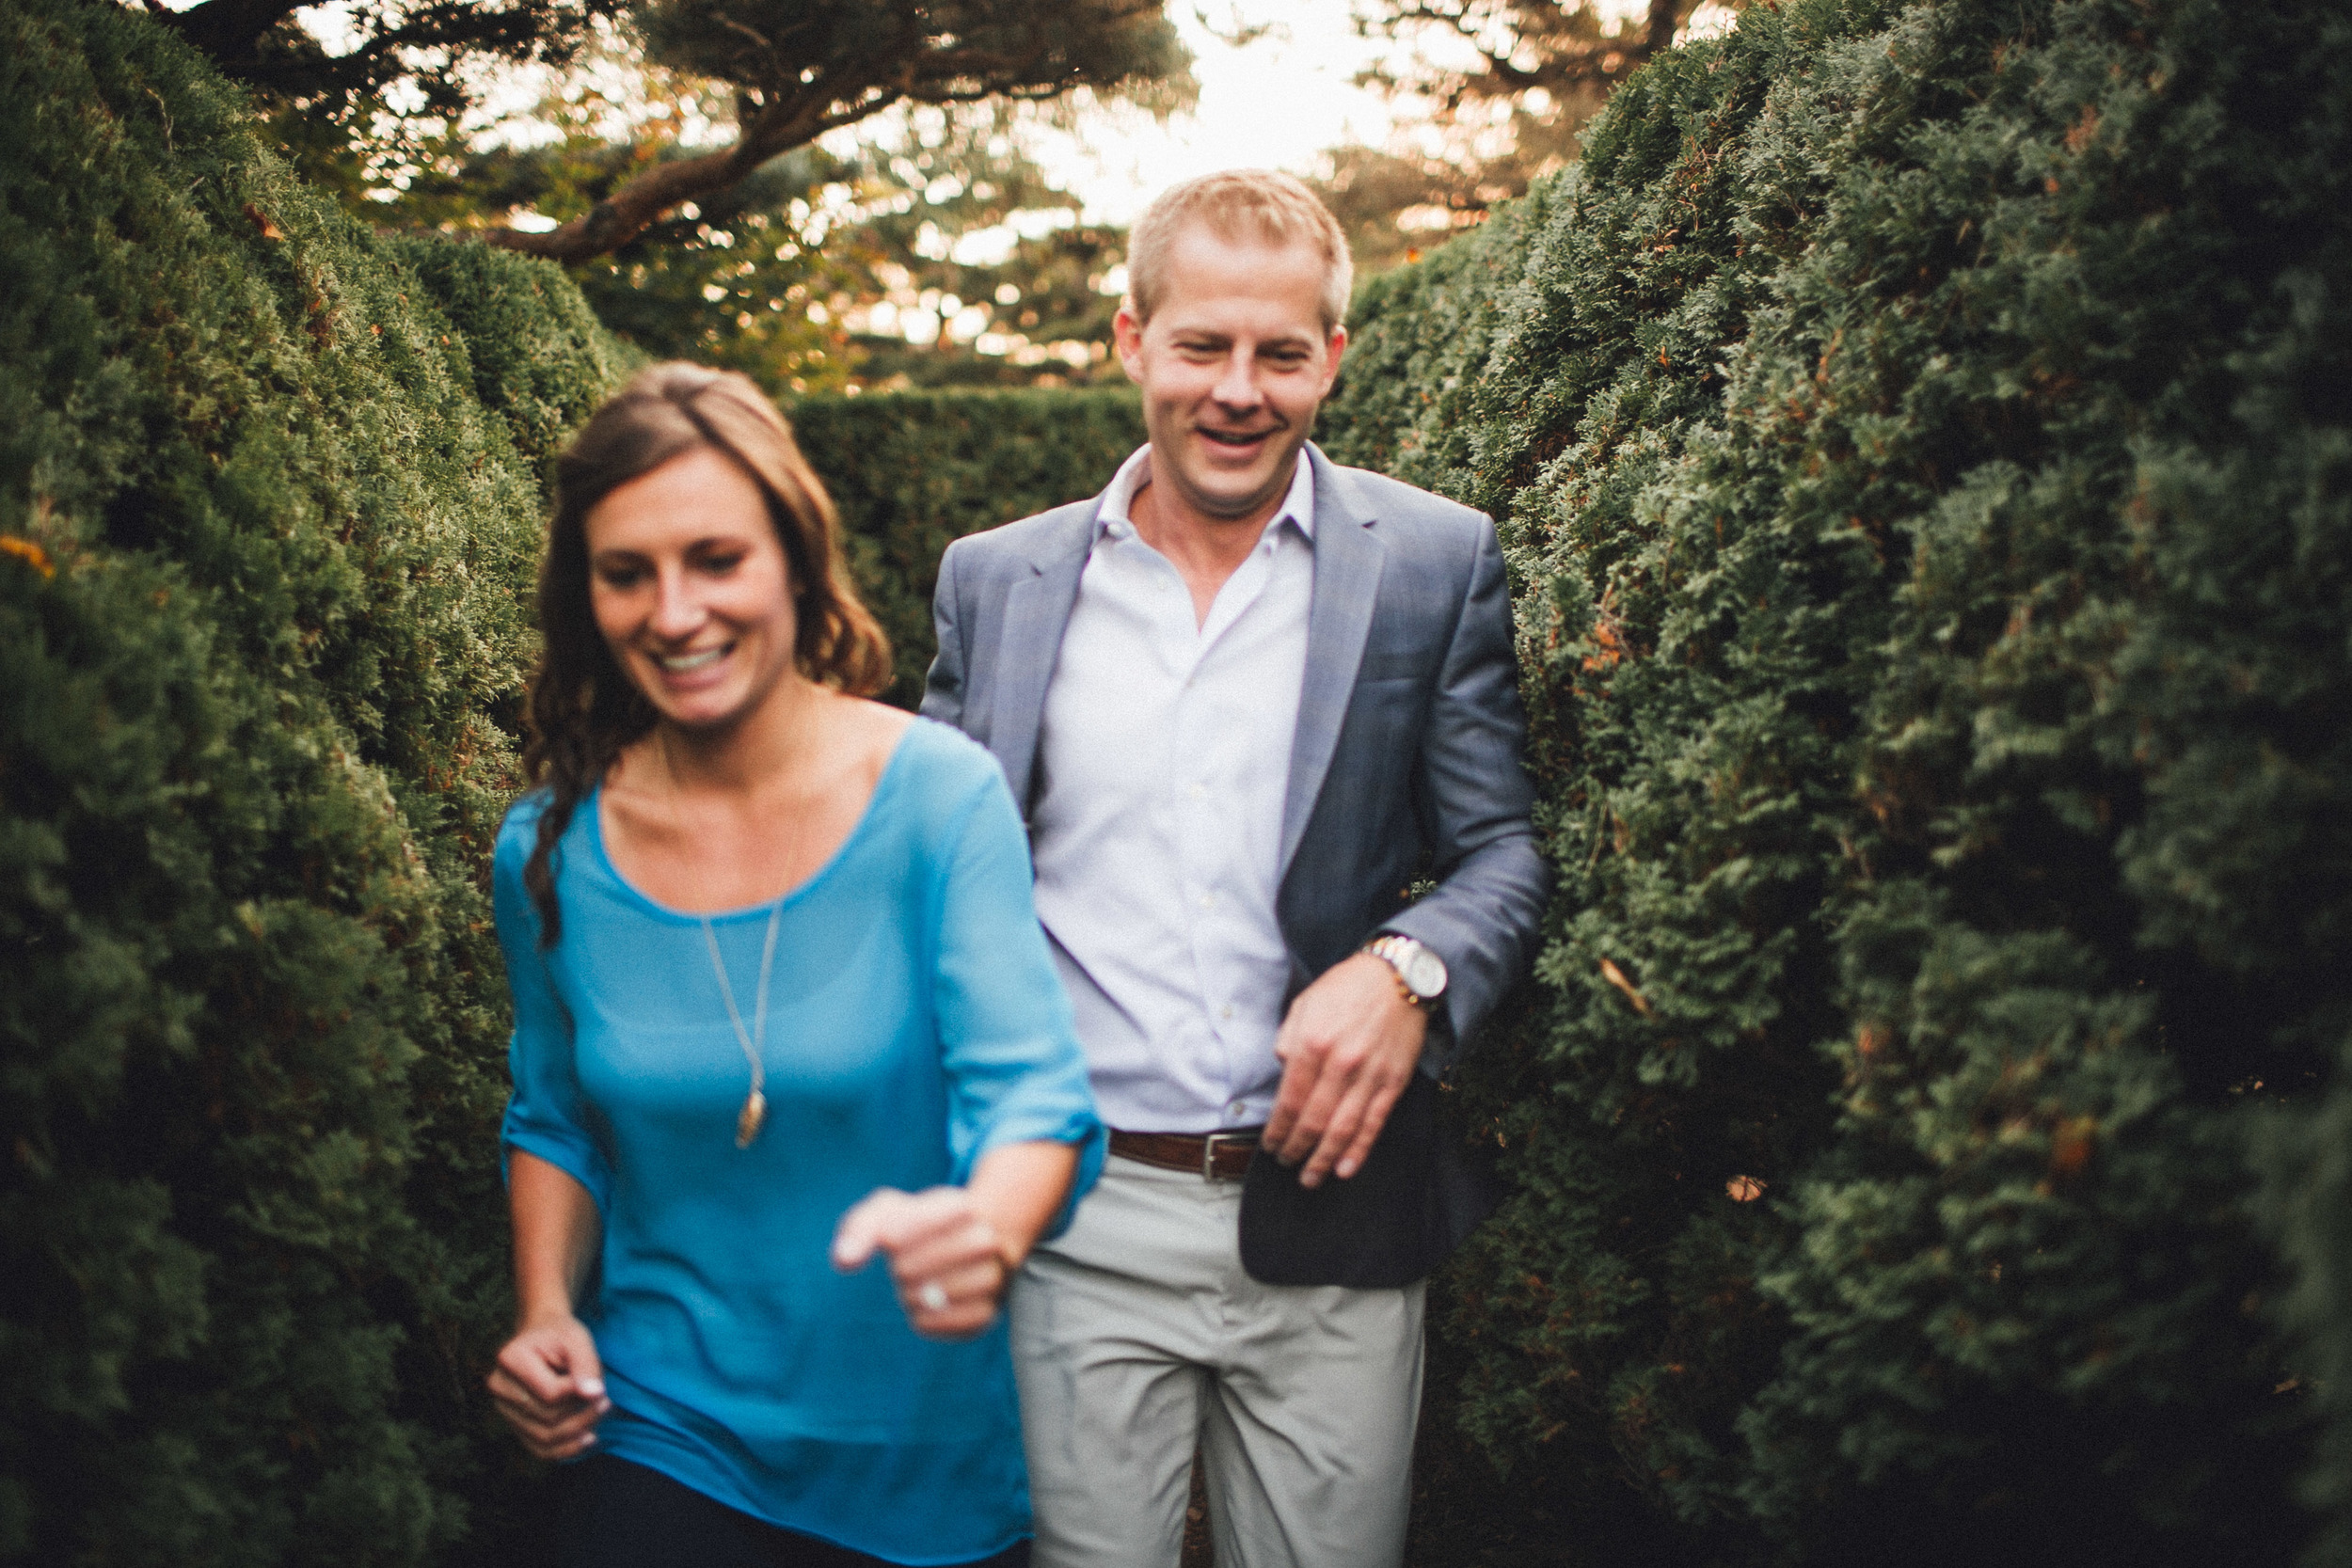 mayden photography_chicago botanical gardens engagement photo-9.jpg